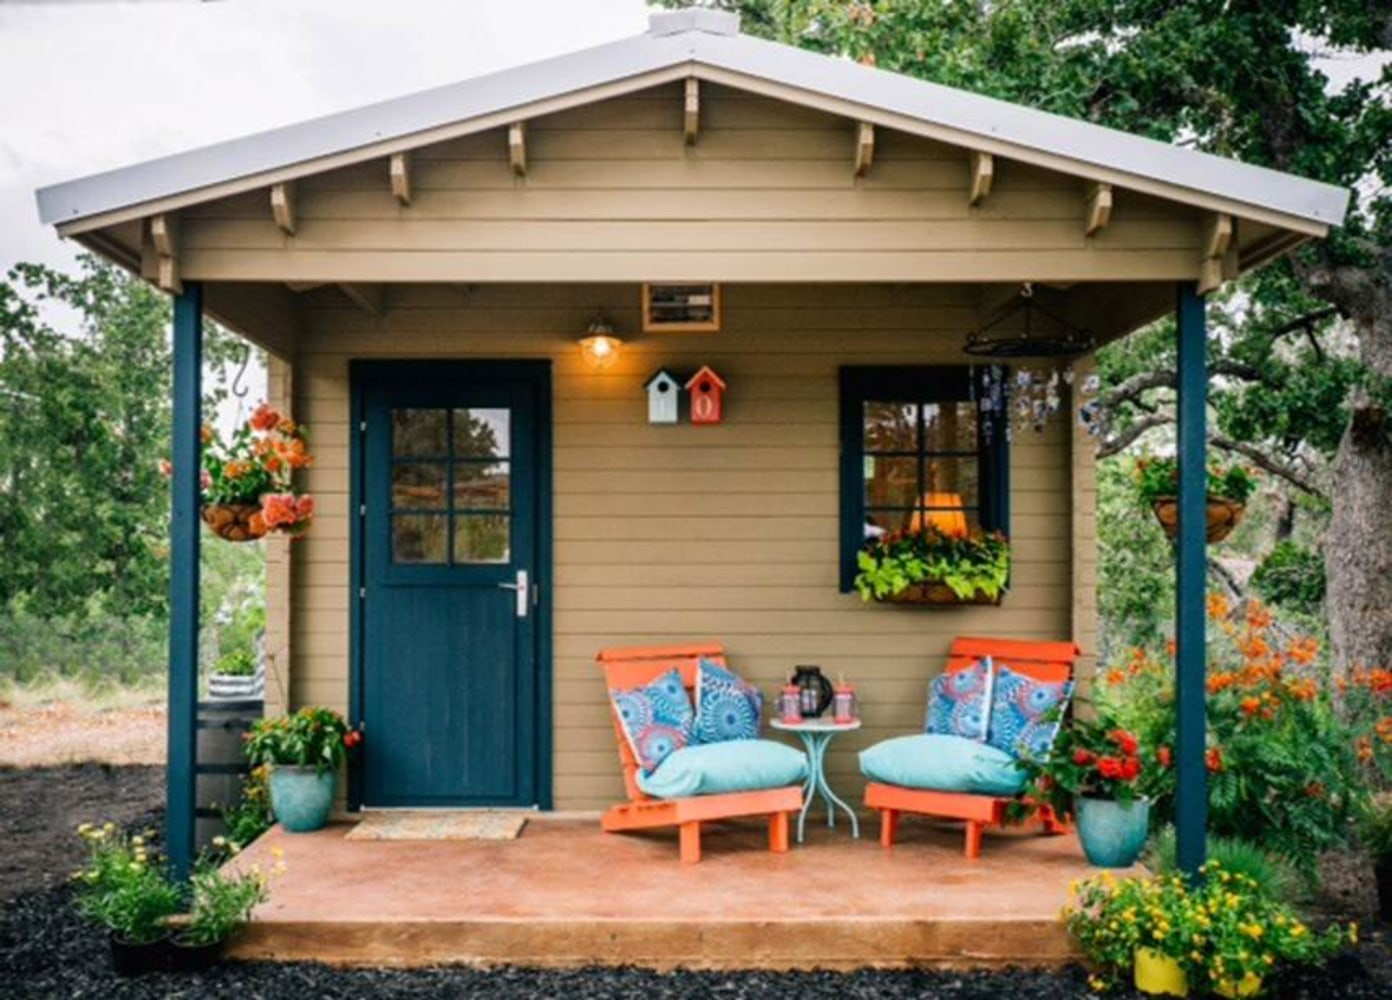 Sensational These Tiny Houses Can Make A Big Difference For Austins Largest Home Design Picture Inspirations Pitcheantrous